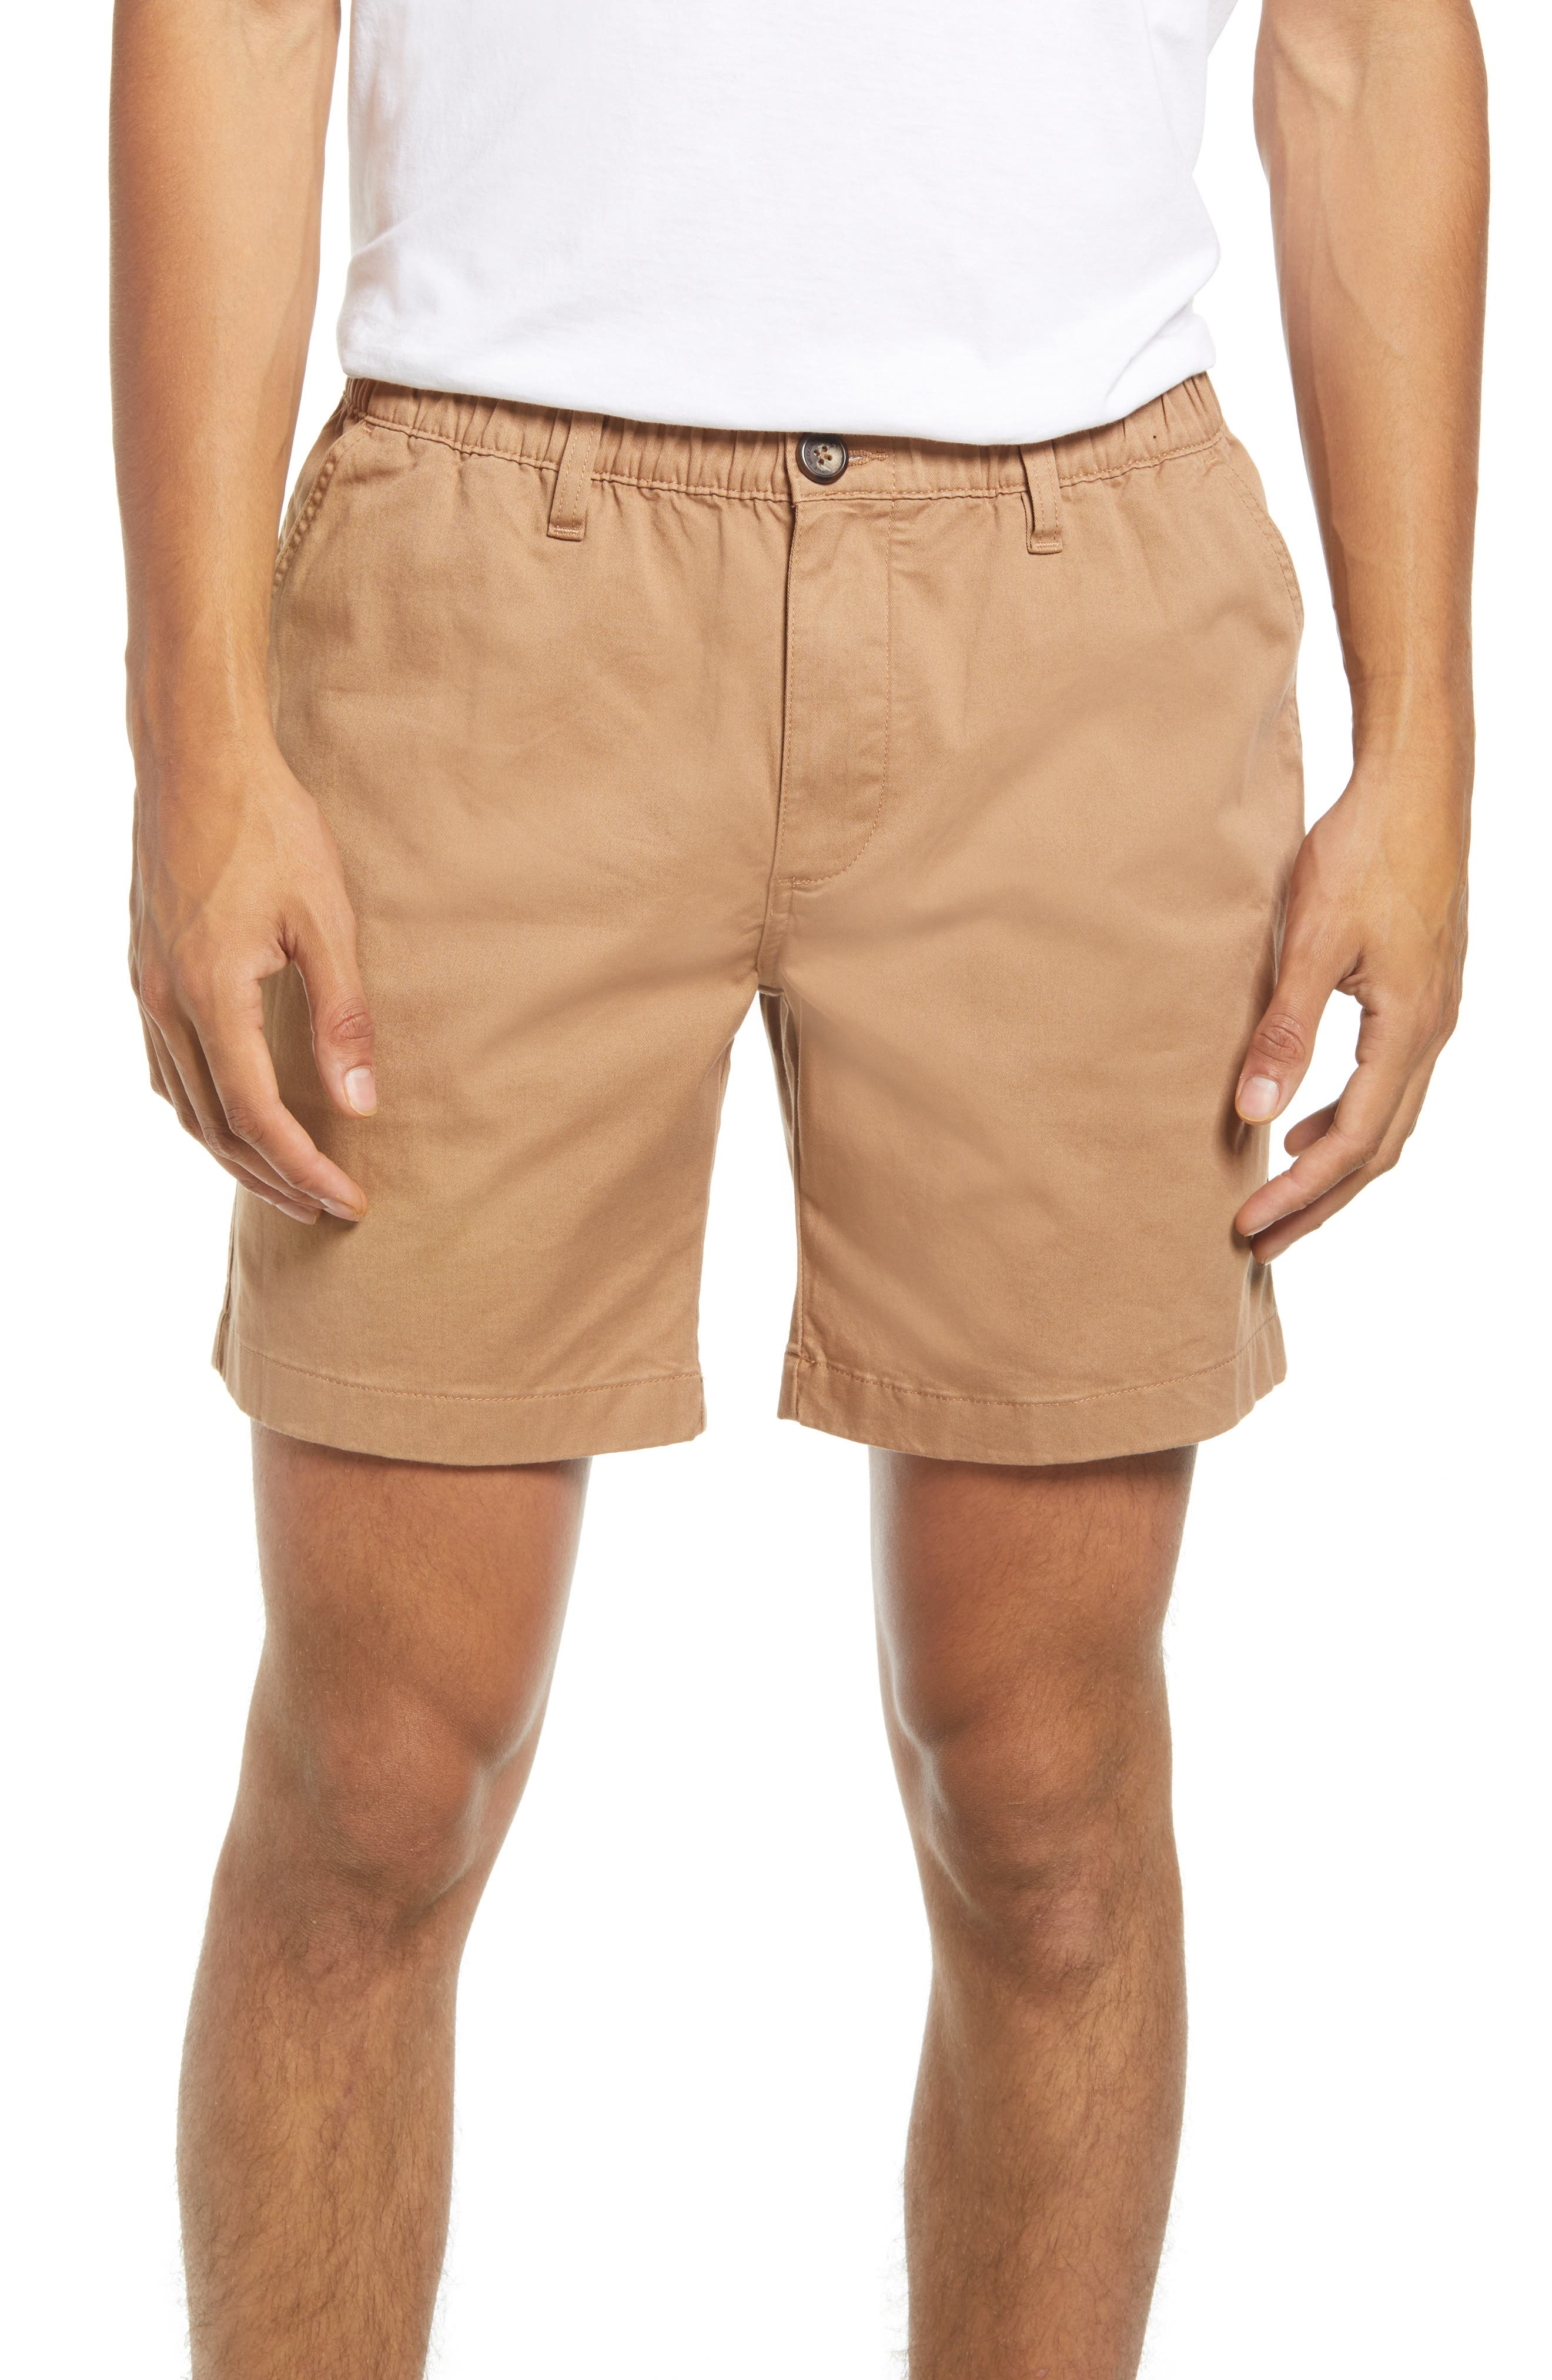 The Staples Stretch Twill Shorts